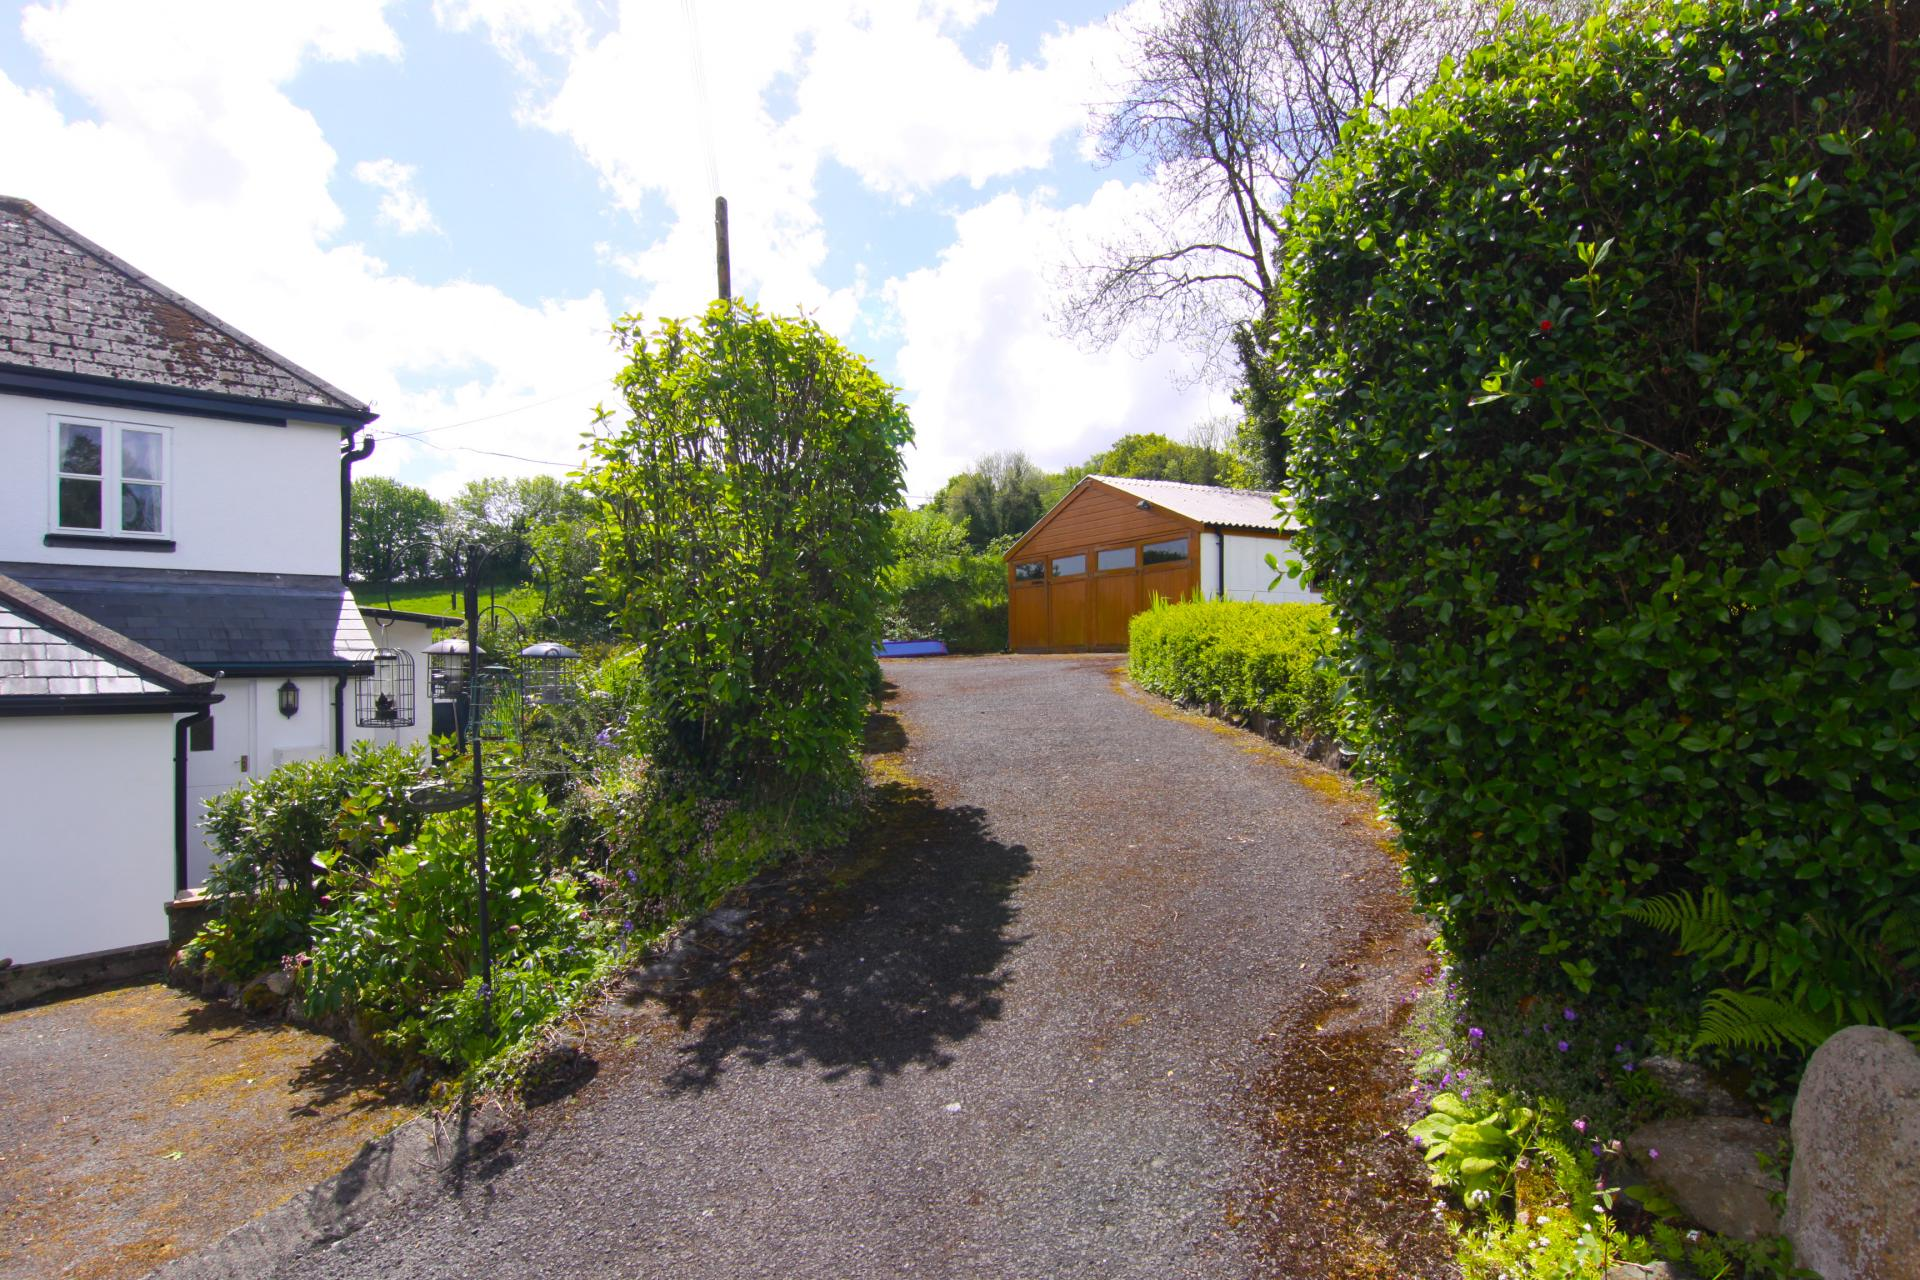 4 Bedroom House For Sale In Okehampton